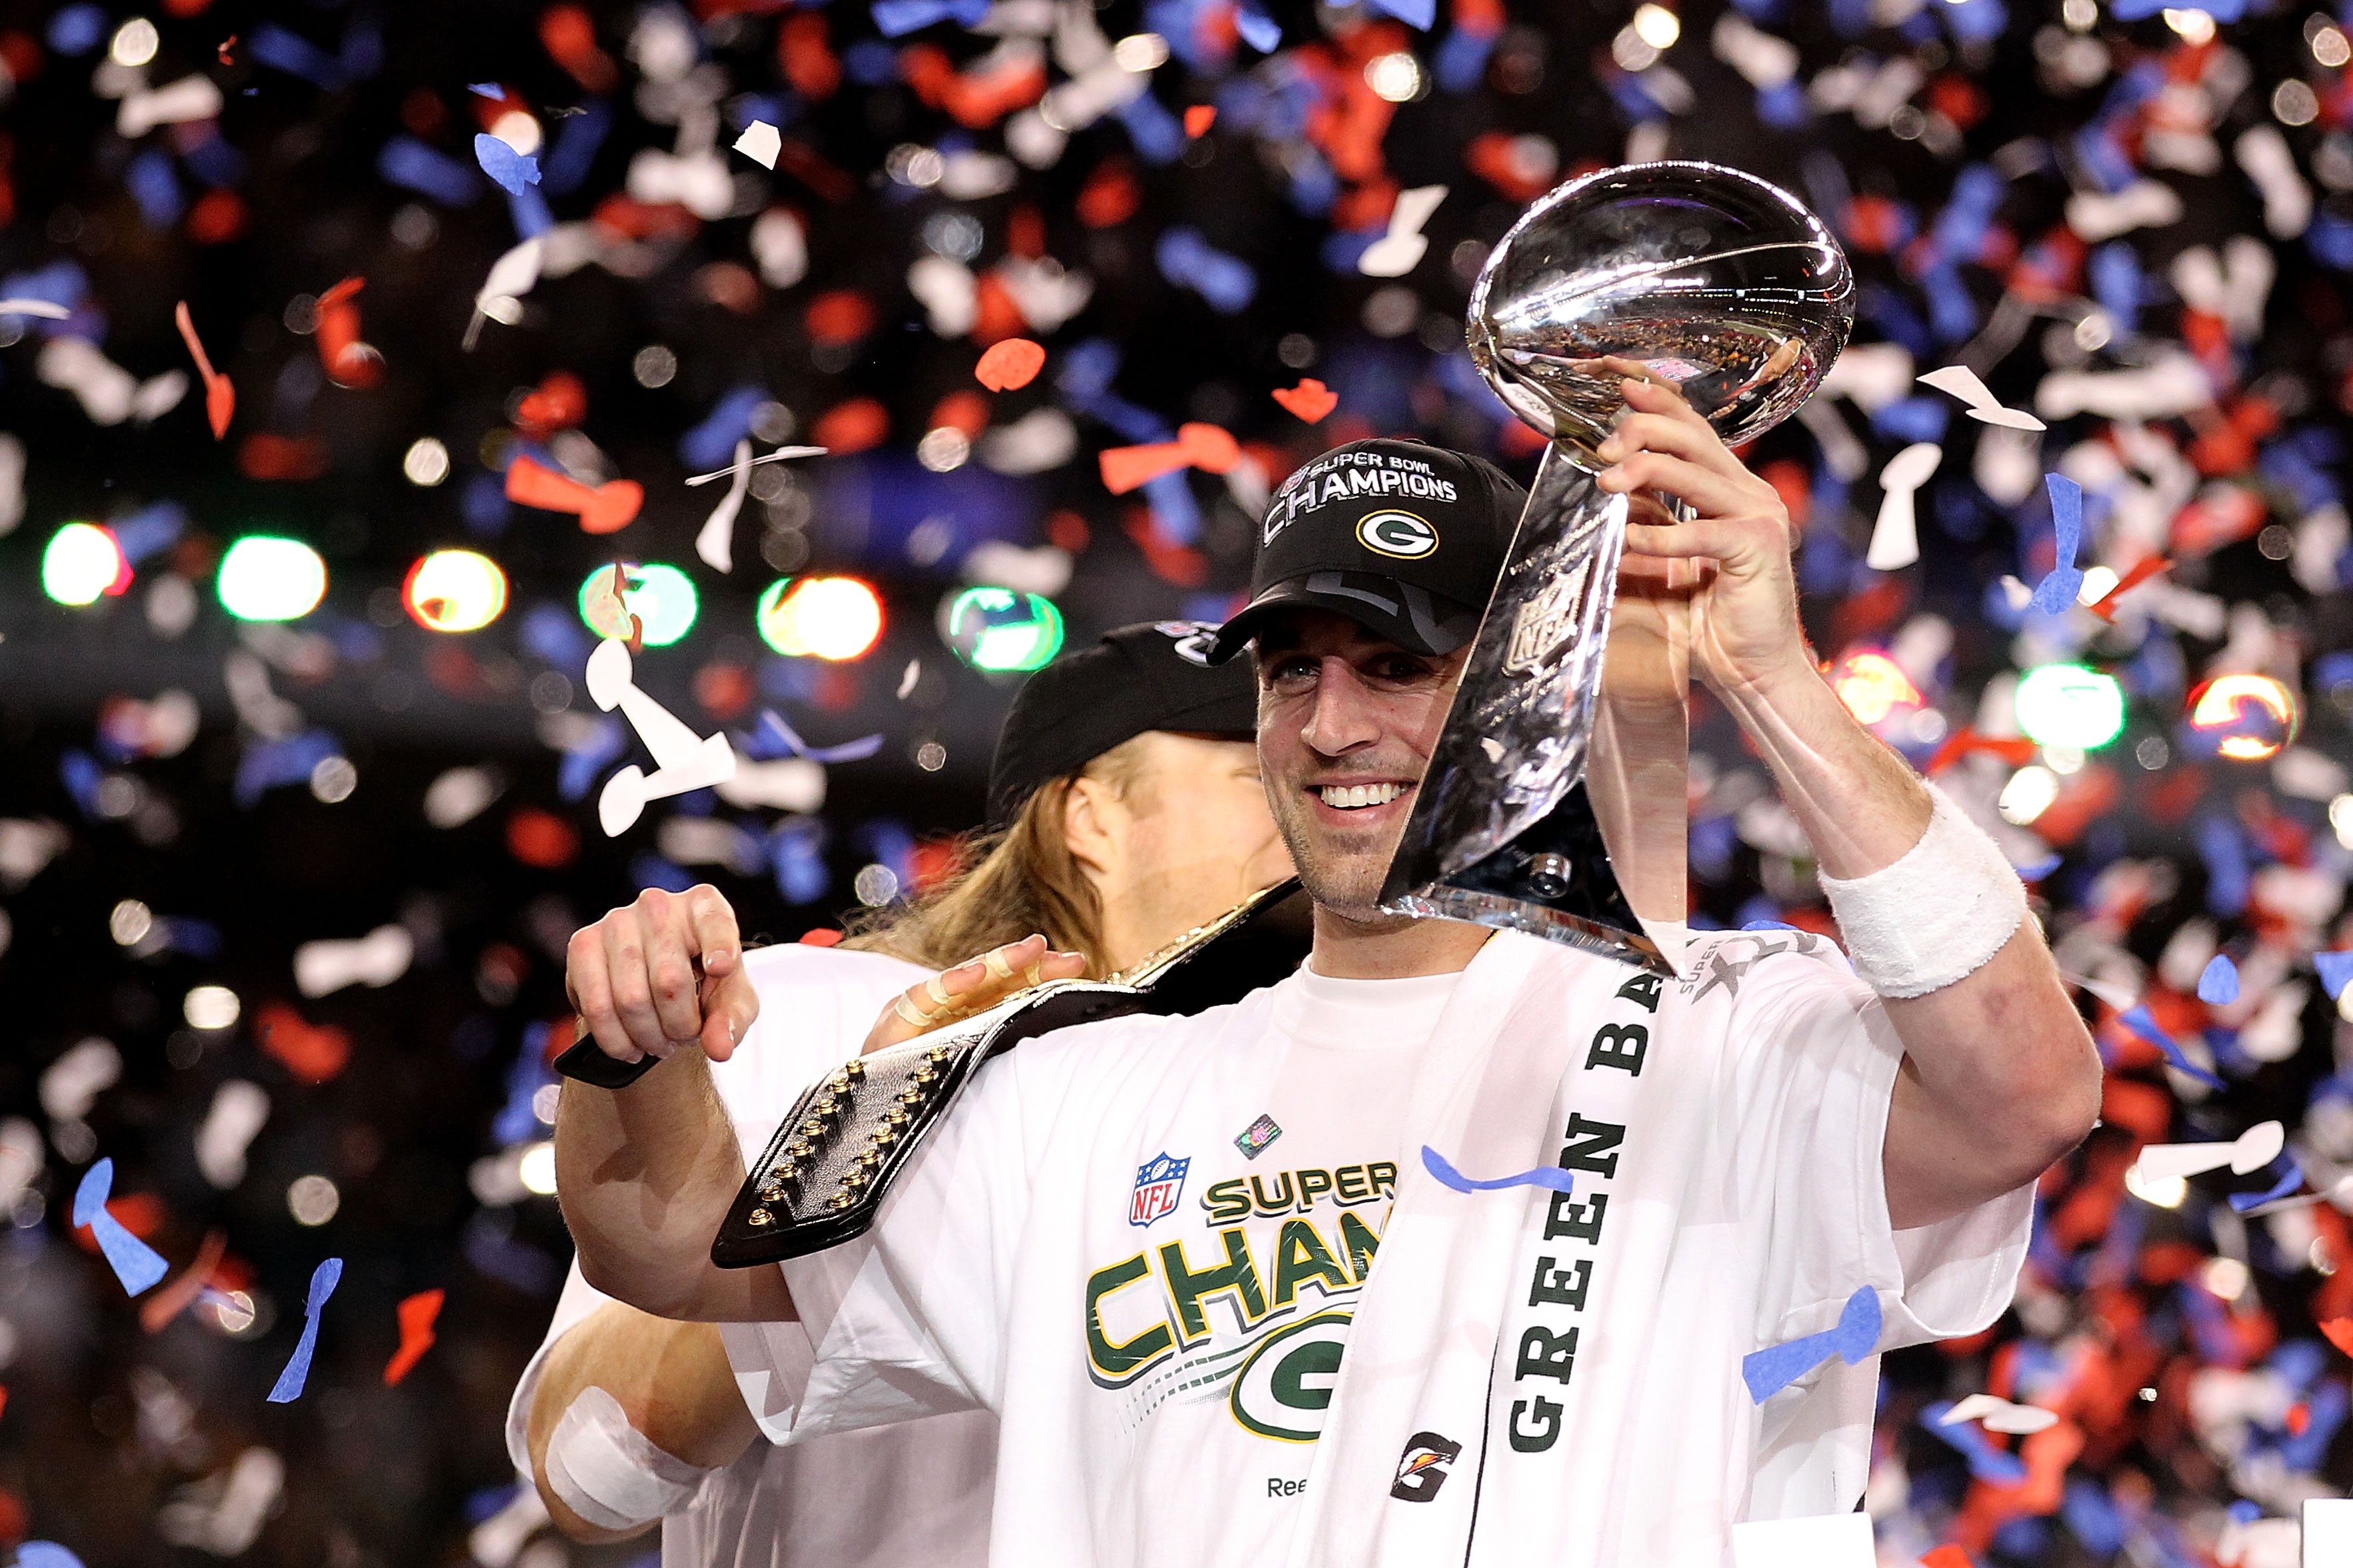 ARLINGTON, TX - FEBRUARY 06:  MVP Aaron Rodgers #12 of the Green Bay Packers celebrates with the Lombardi Trophy after winning Super Bowl XLV against the Pittsburgh Steelers at Cowboys Stadium on February 6, 2011 in Arlington, Texas.  (Photo by Al Bello/G